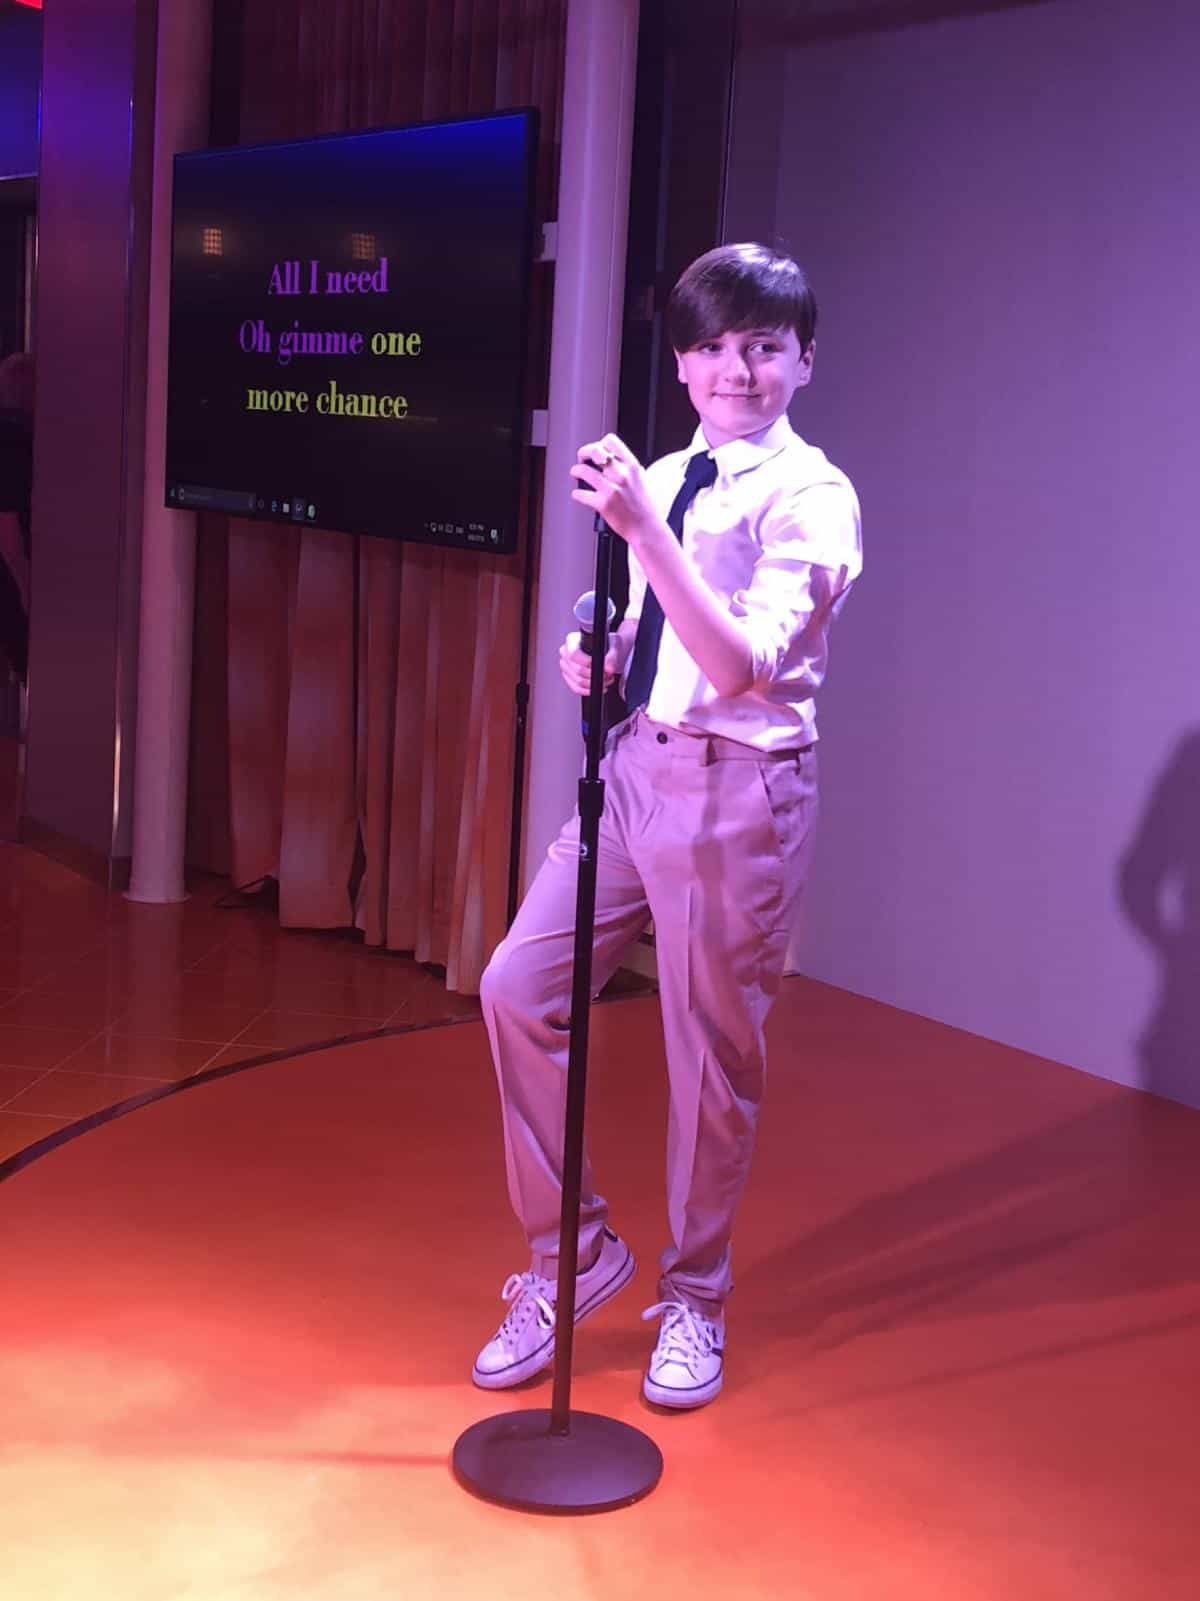 Karaoke live on air on the Symphony of the Seas